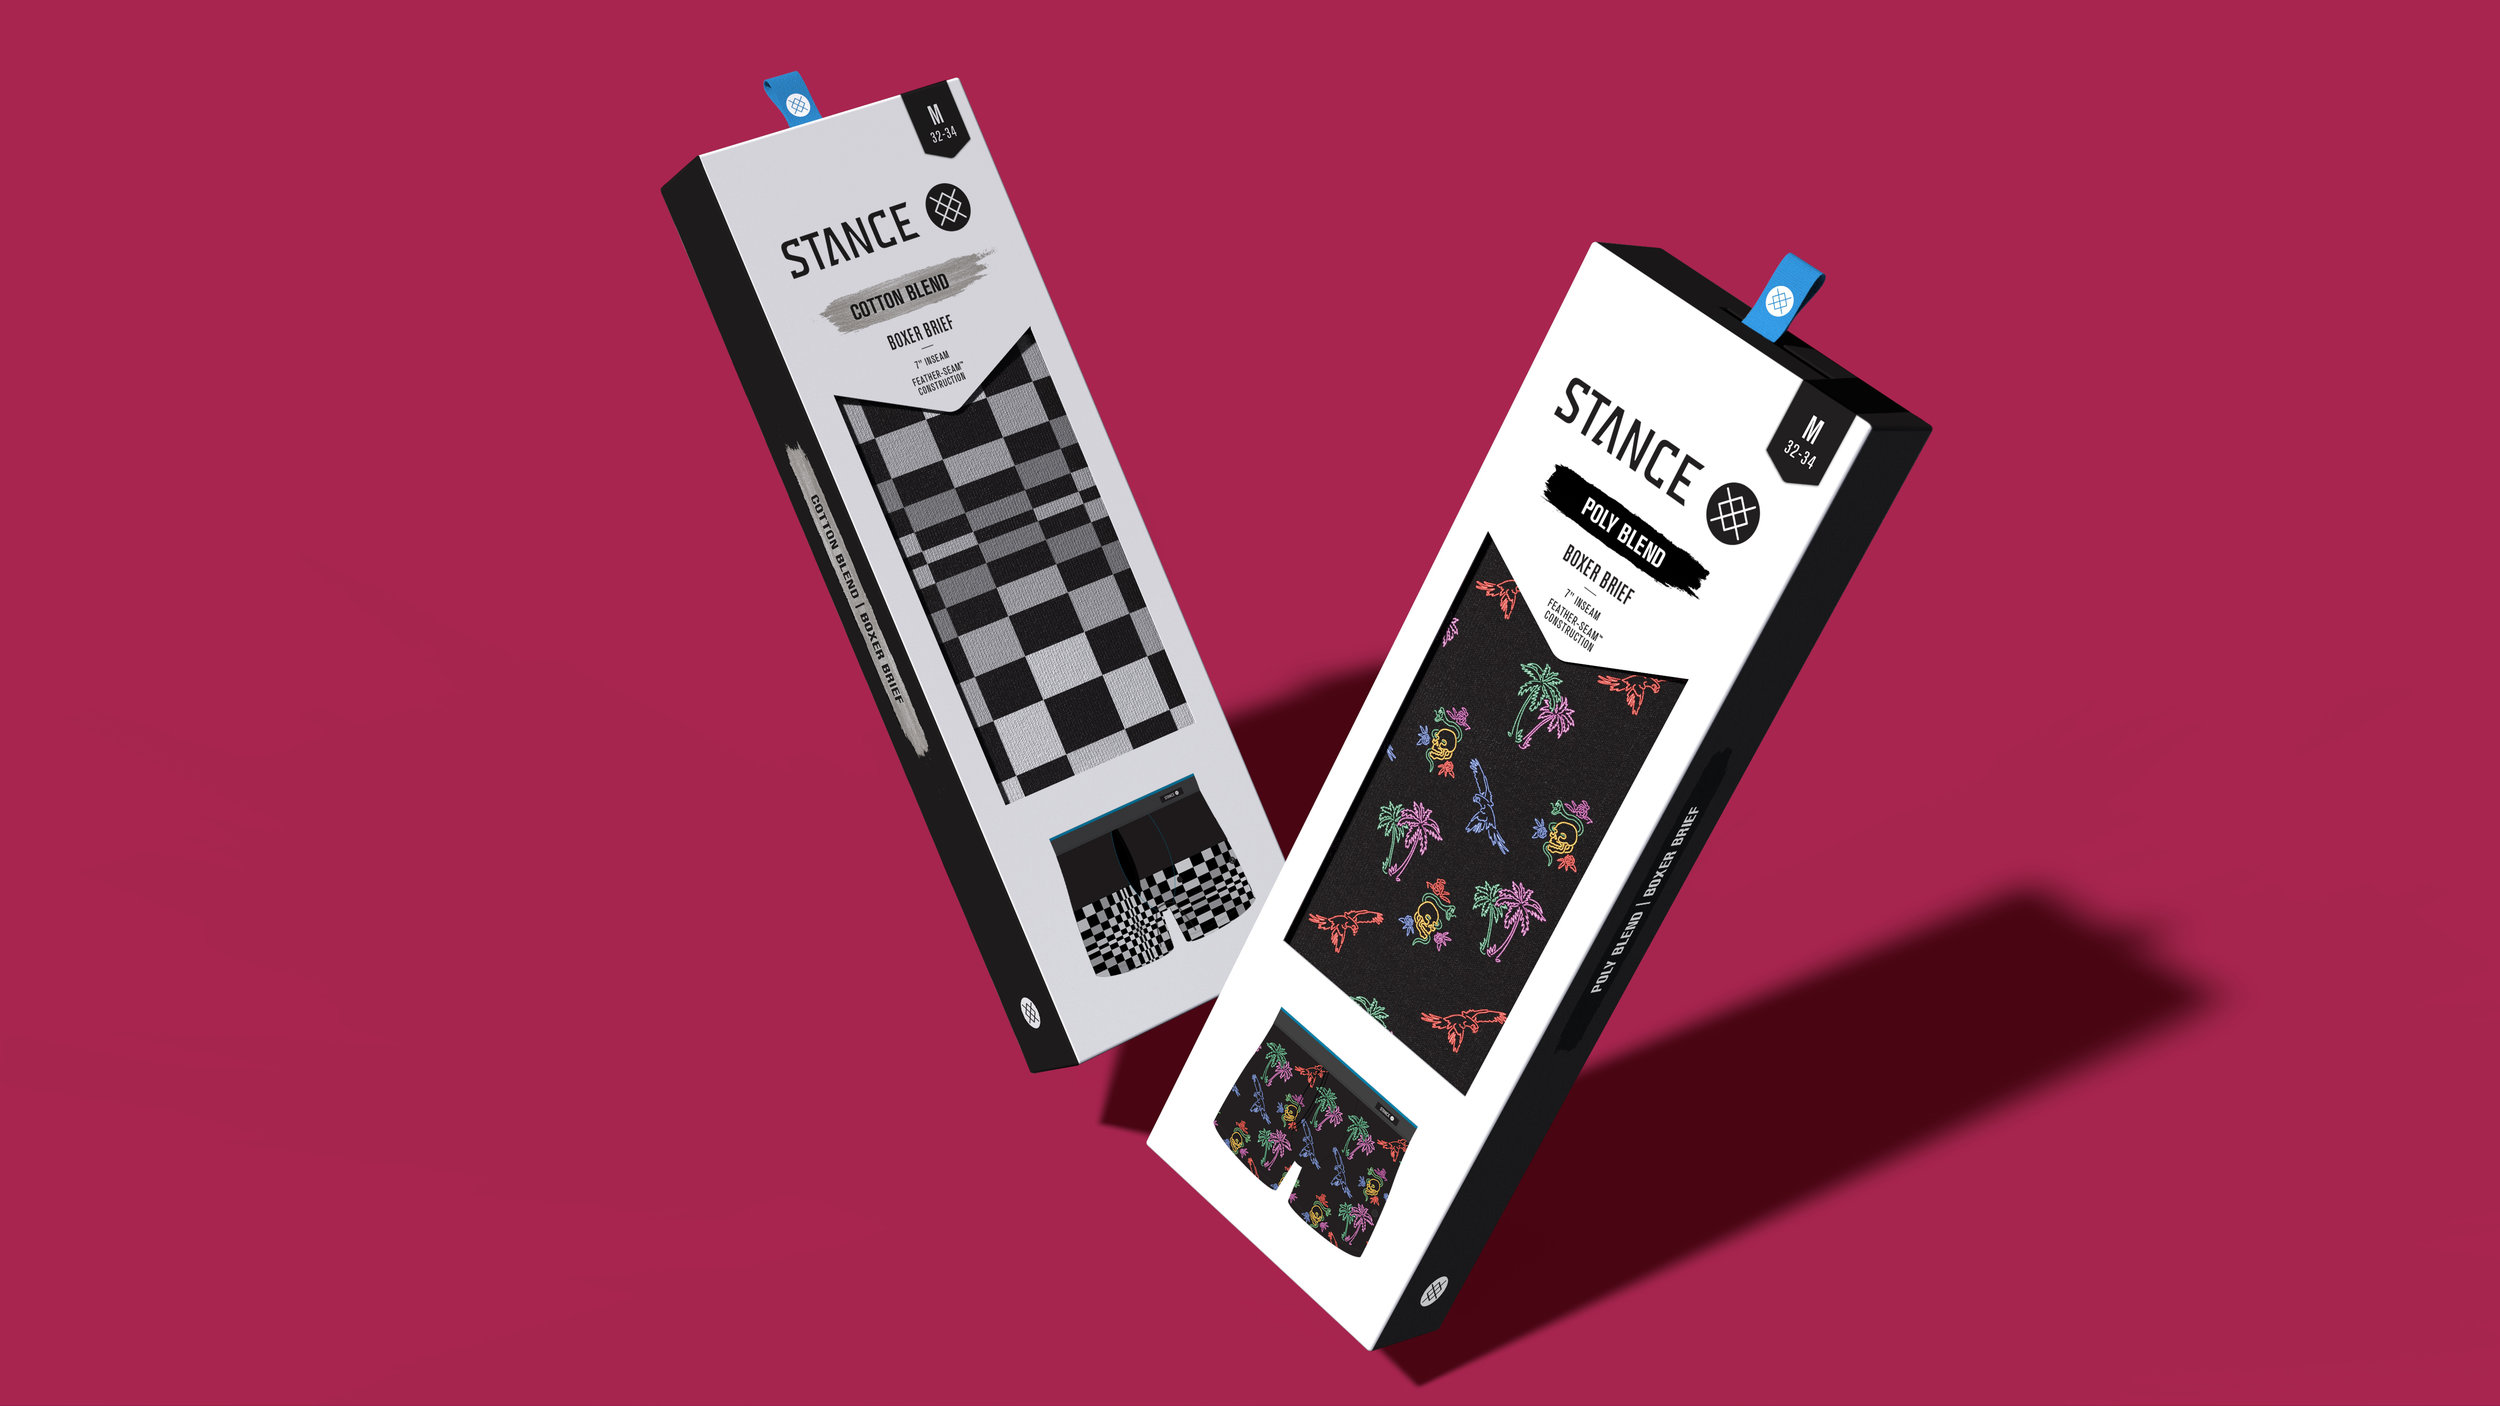 Stance Boxer Packaging